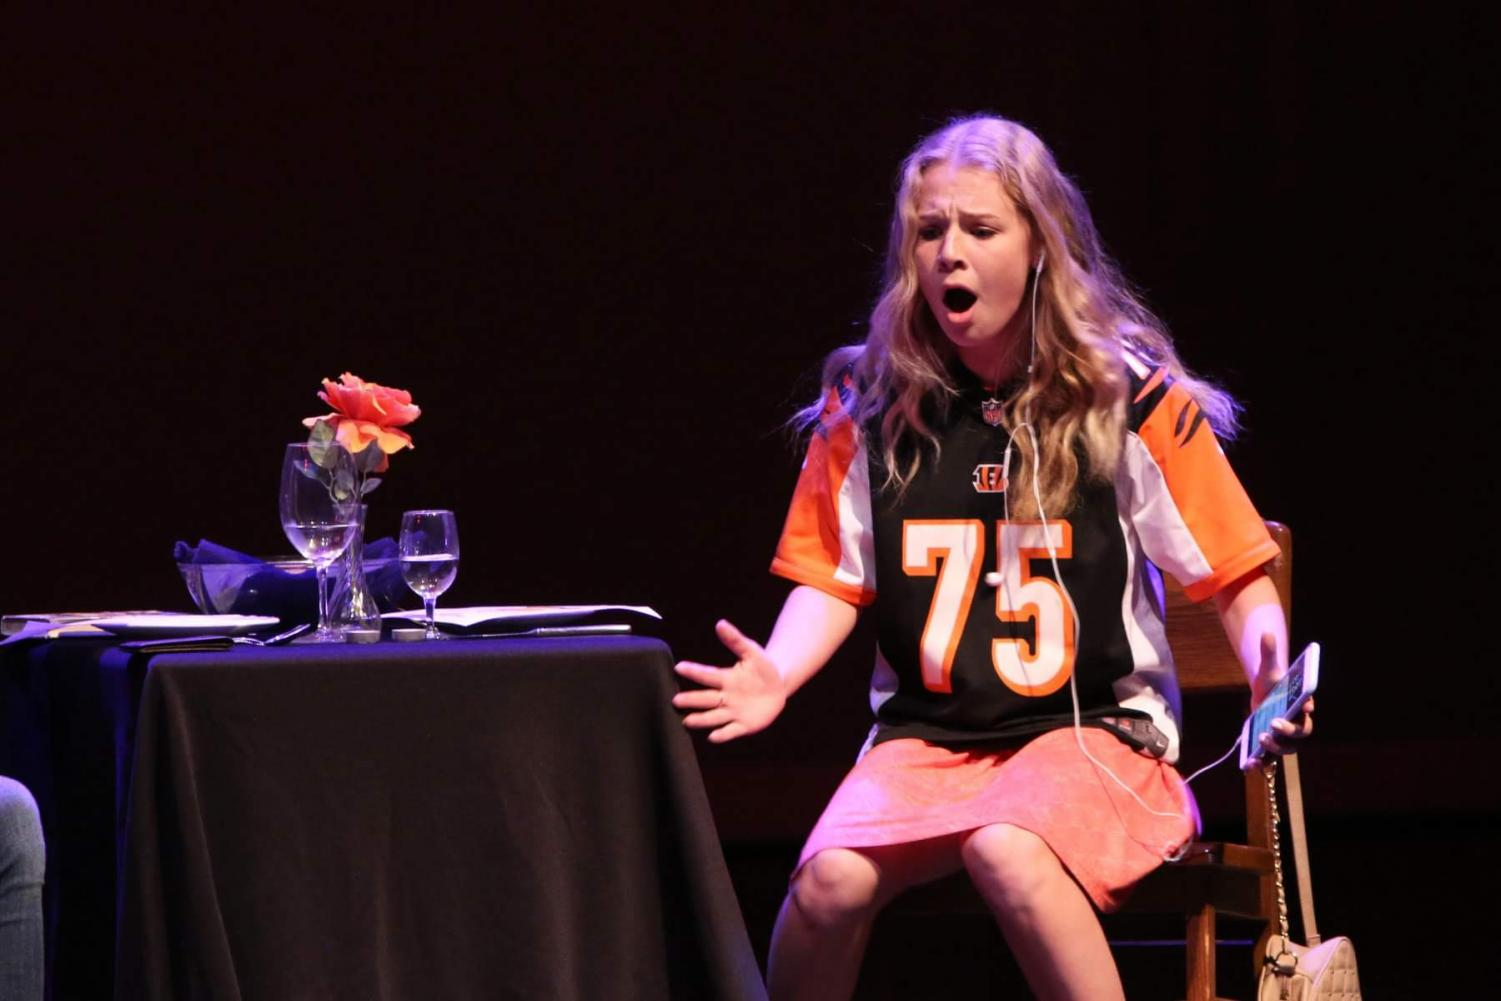 Claire Donohoe lights up the stage with her acting skills during an Adams production.